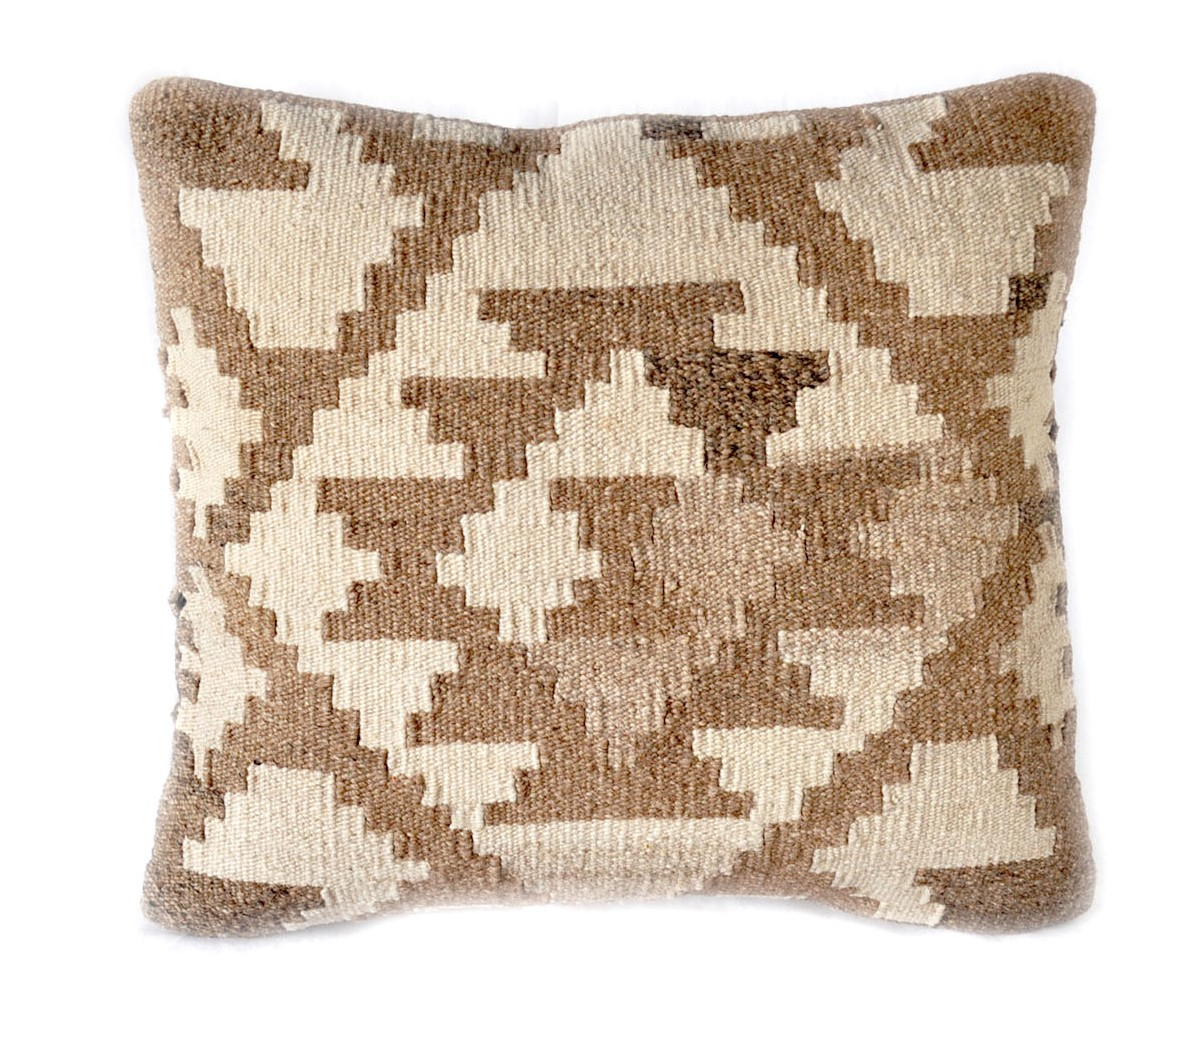 18×18 Hand-woven Wool Kilim Pillow Cover 12980991